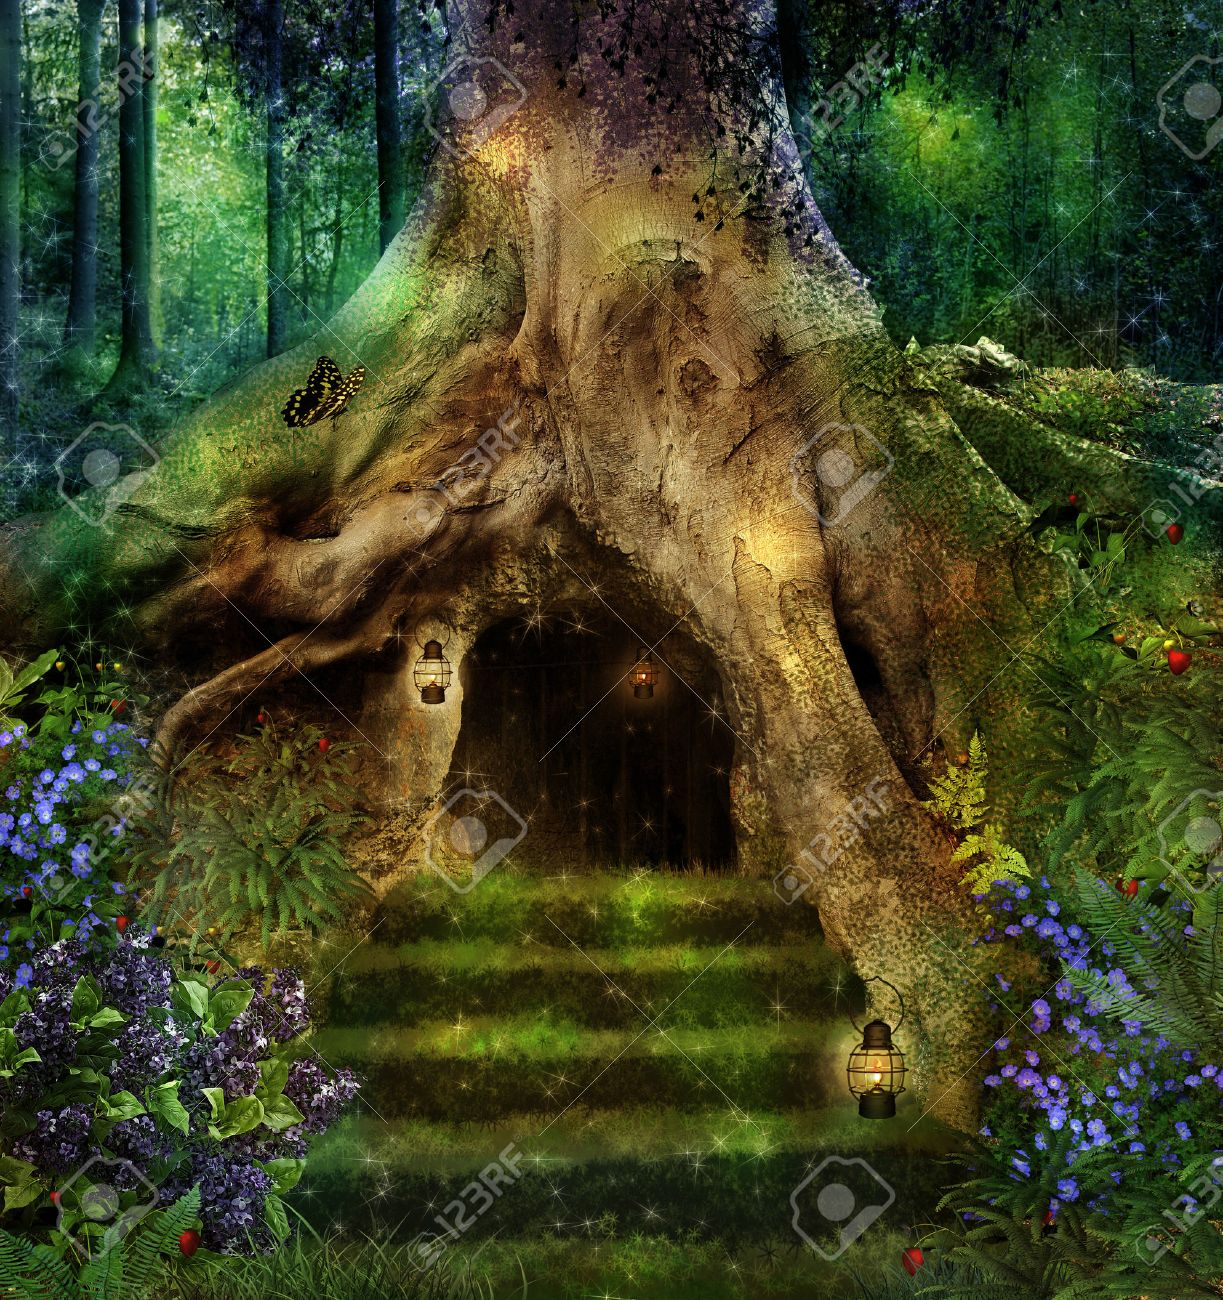 Superb Old Tree In The Forest With A Little House In Ists Roots Stock Photo    27612961